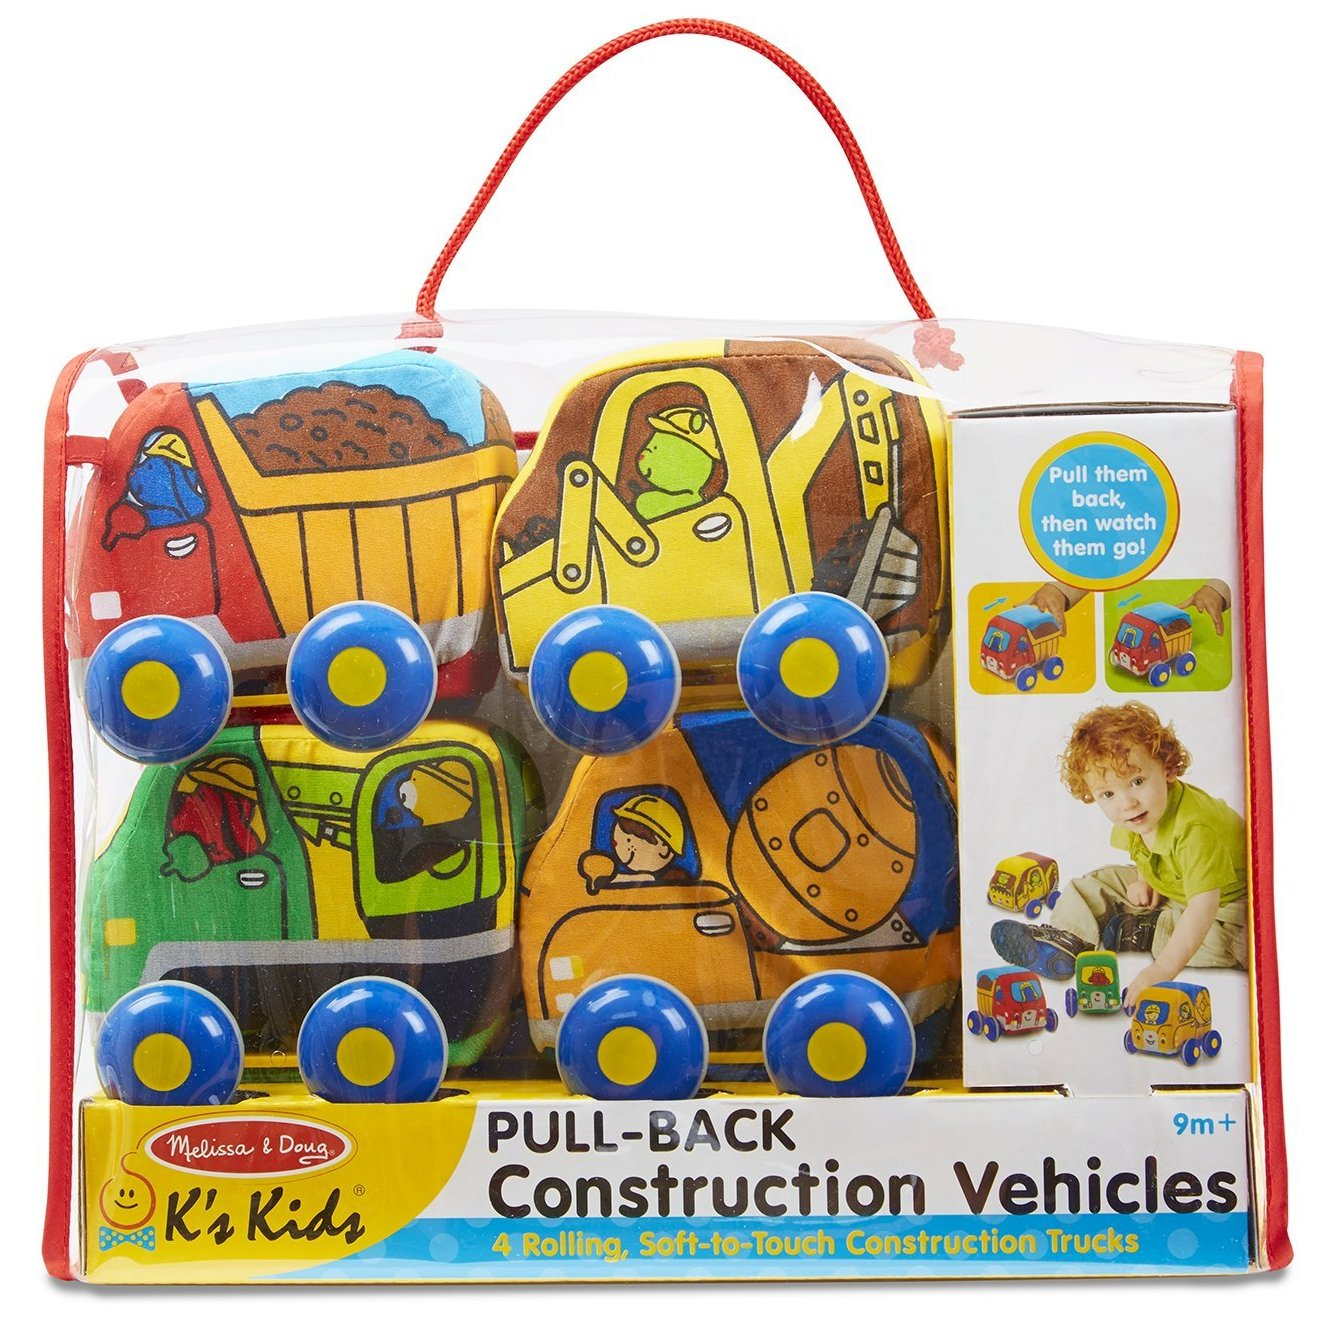 Pull-Back Construction Vehicles